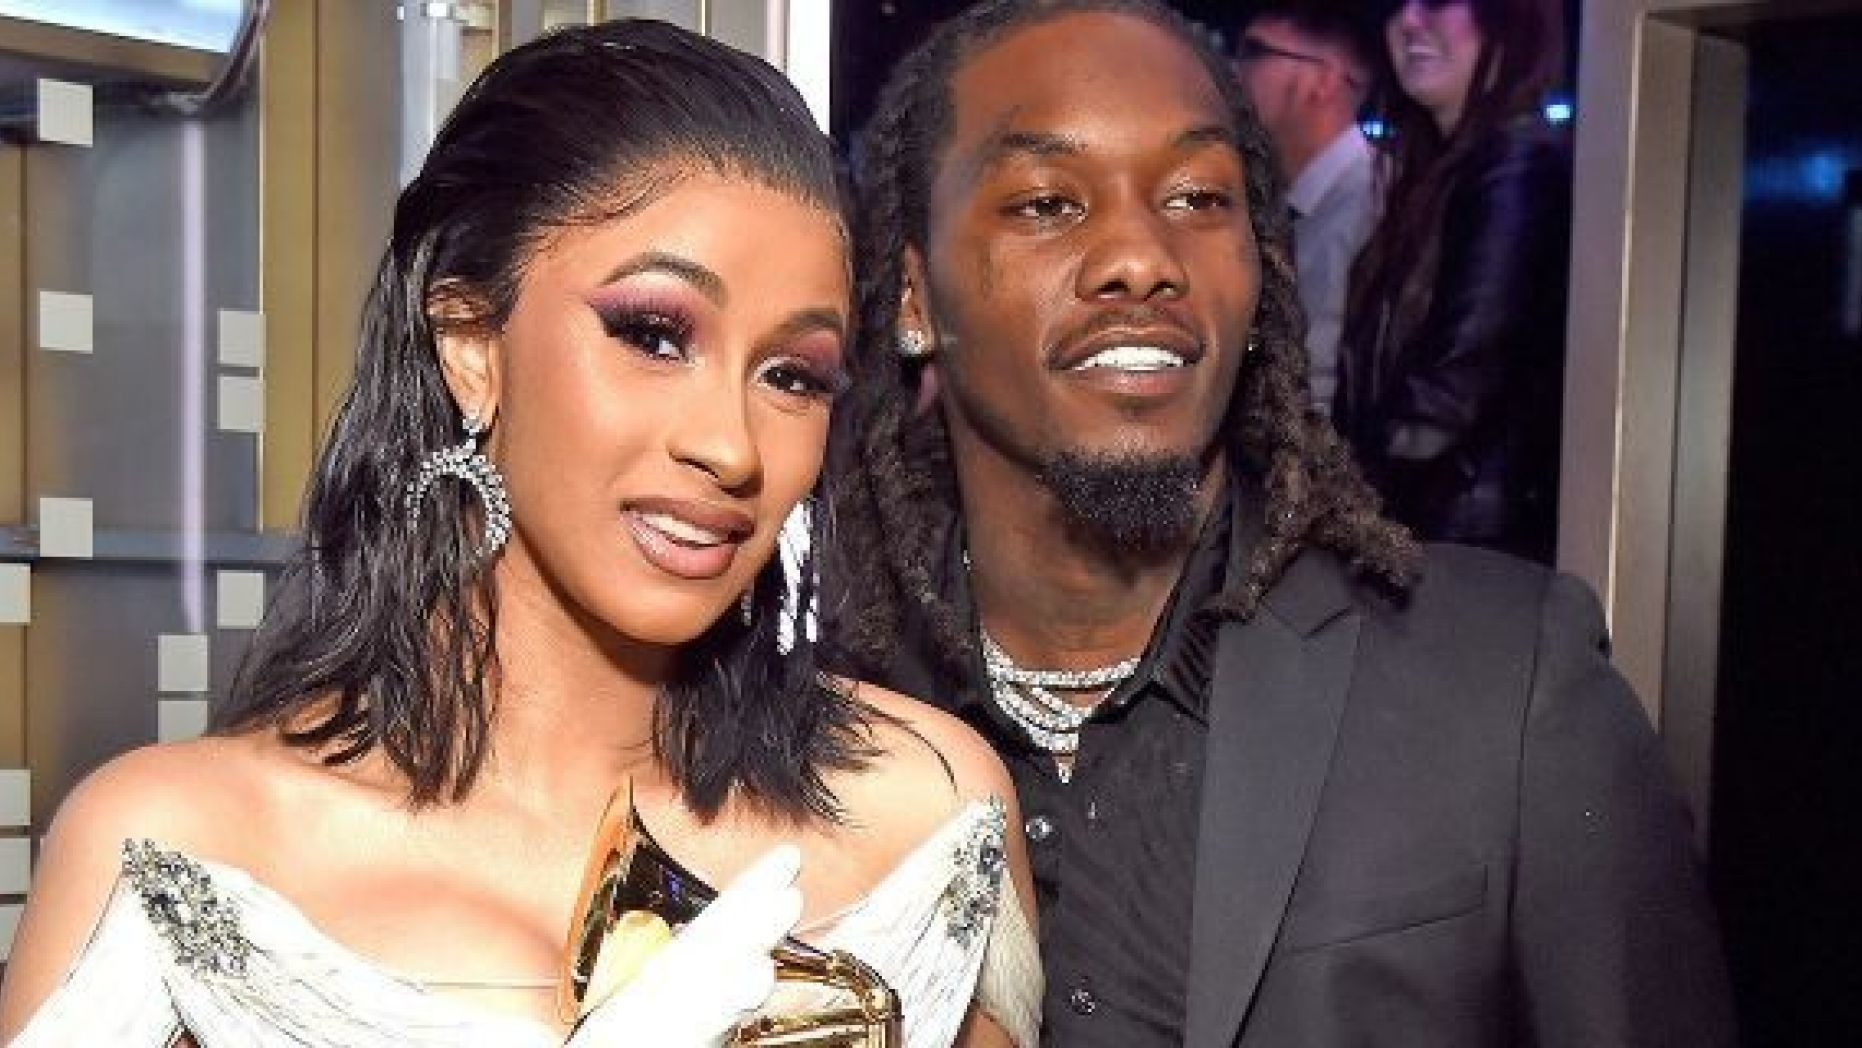 Cardi B Offset Could Be Fully Back Together Very Soon: Cardi B Looks Drop-Dead Gorgeous In A Hot Tub With Offset